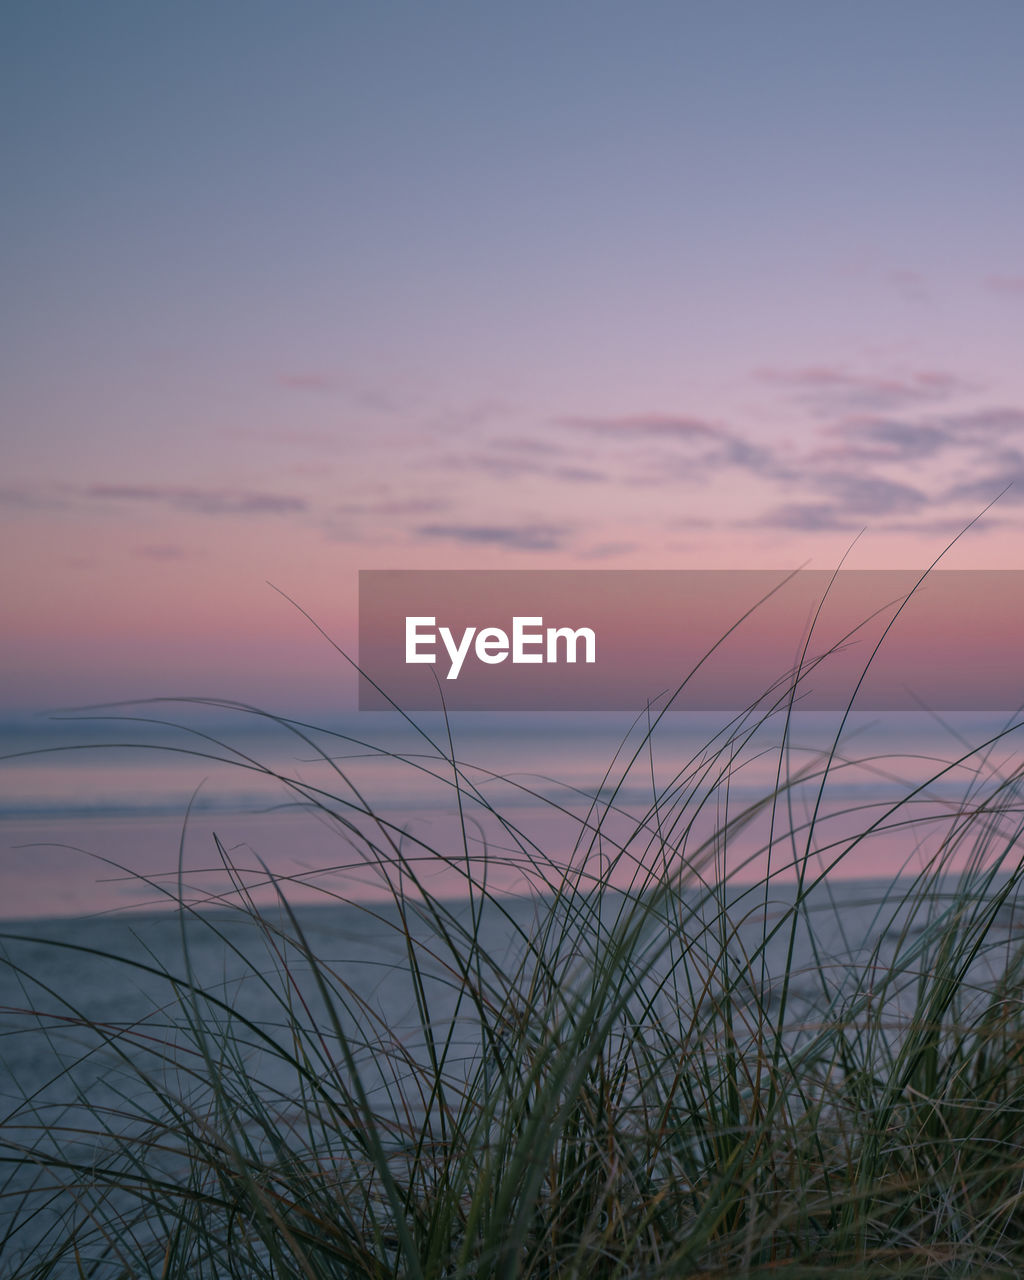 sunset, sky, beauty in nature, scenics - nature, tranquility, tranquil scene, plant, nature, no people, cloud - sky, water, grass, sea, orange color, idyllic, horizon, non-urban scene, growth, horizon over water, outdoors, marram grass